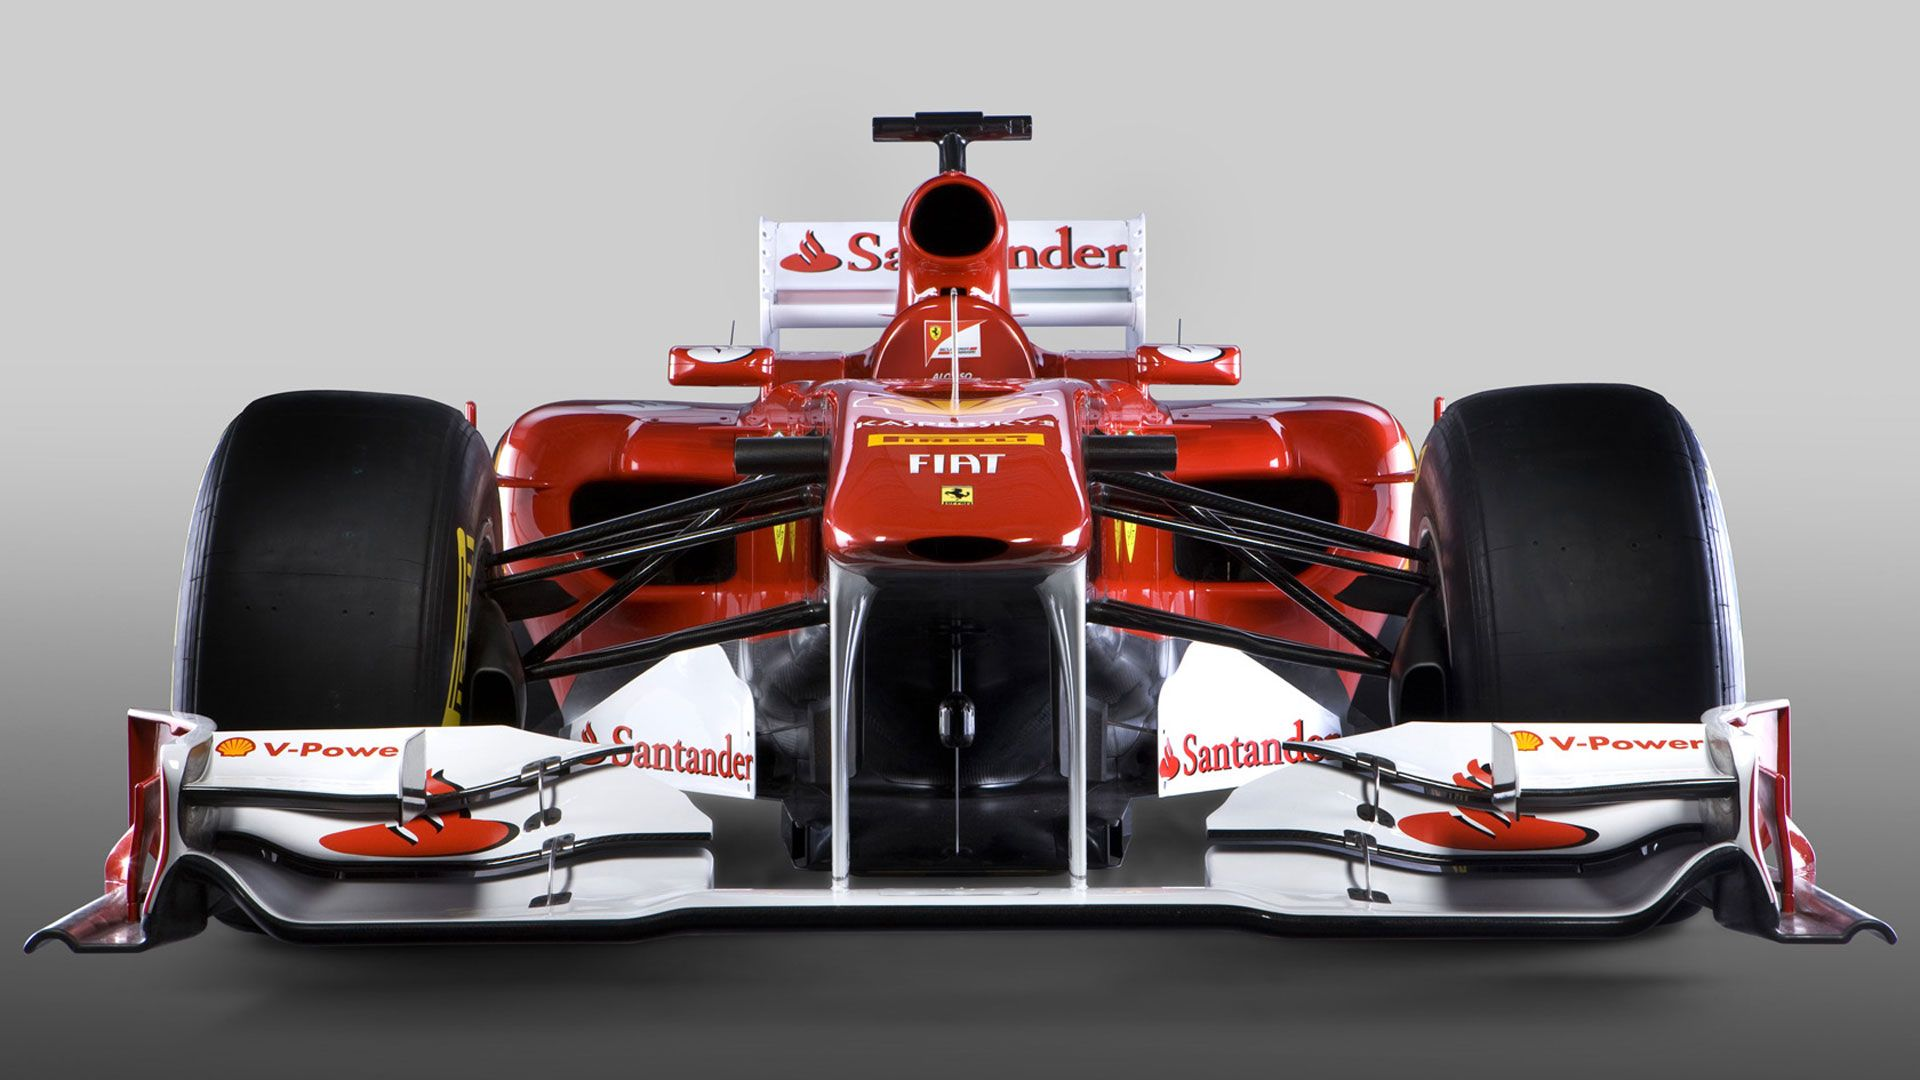 Sports F1 Wallpaper F1 Ferrari Ferrari F1 Sport F1